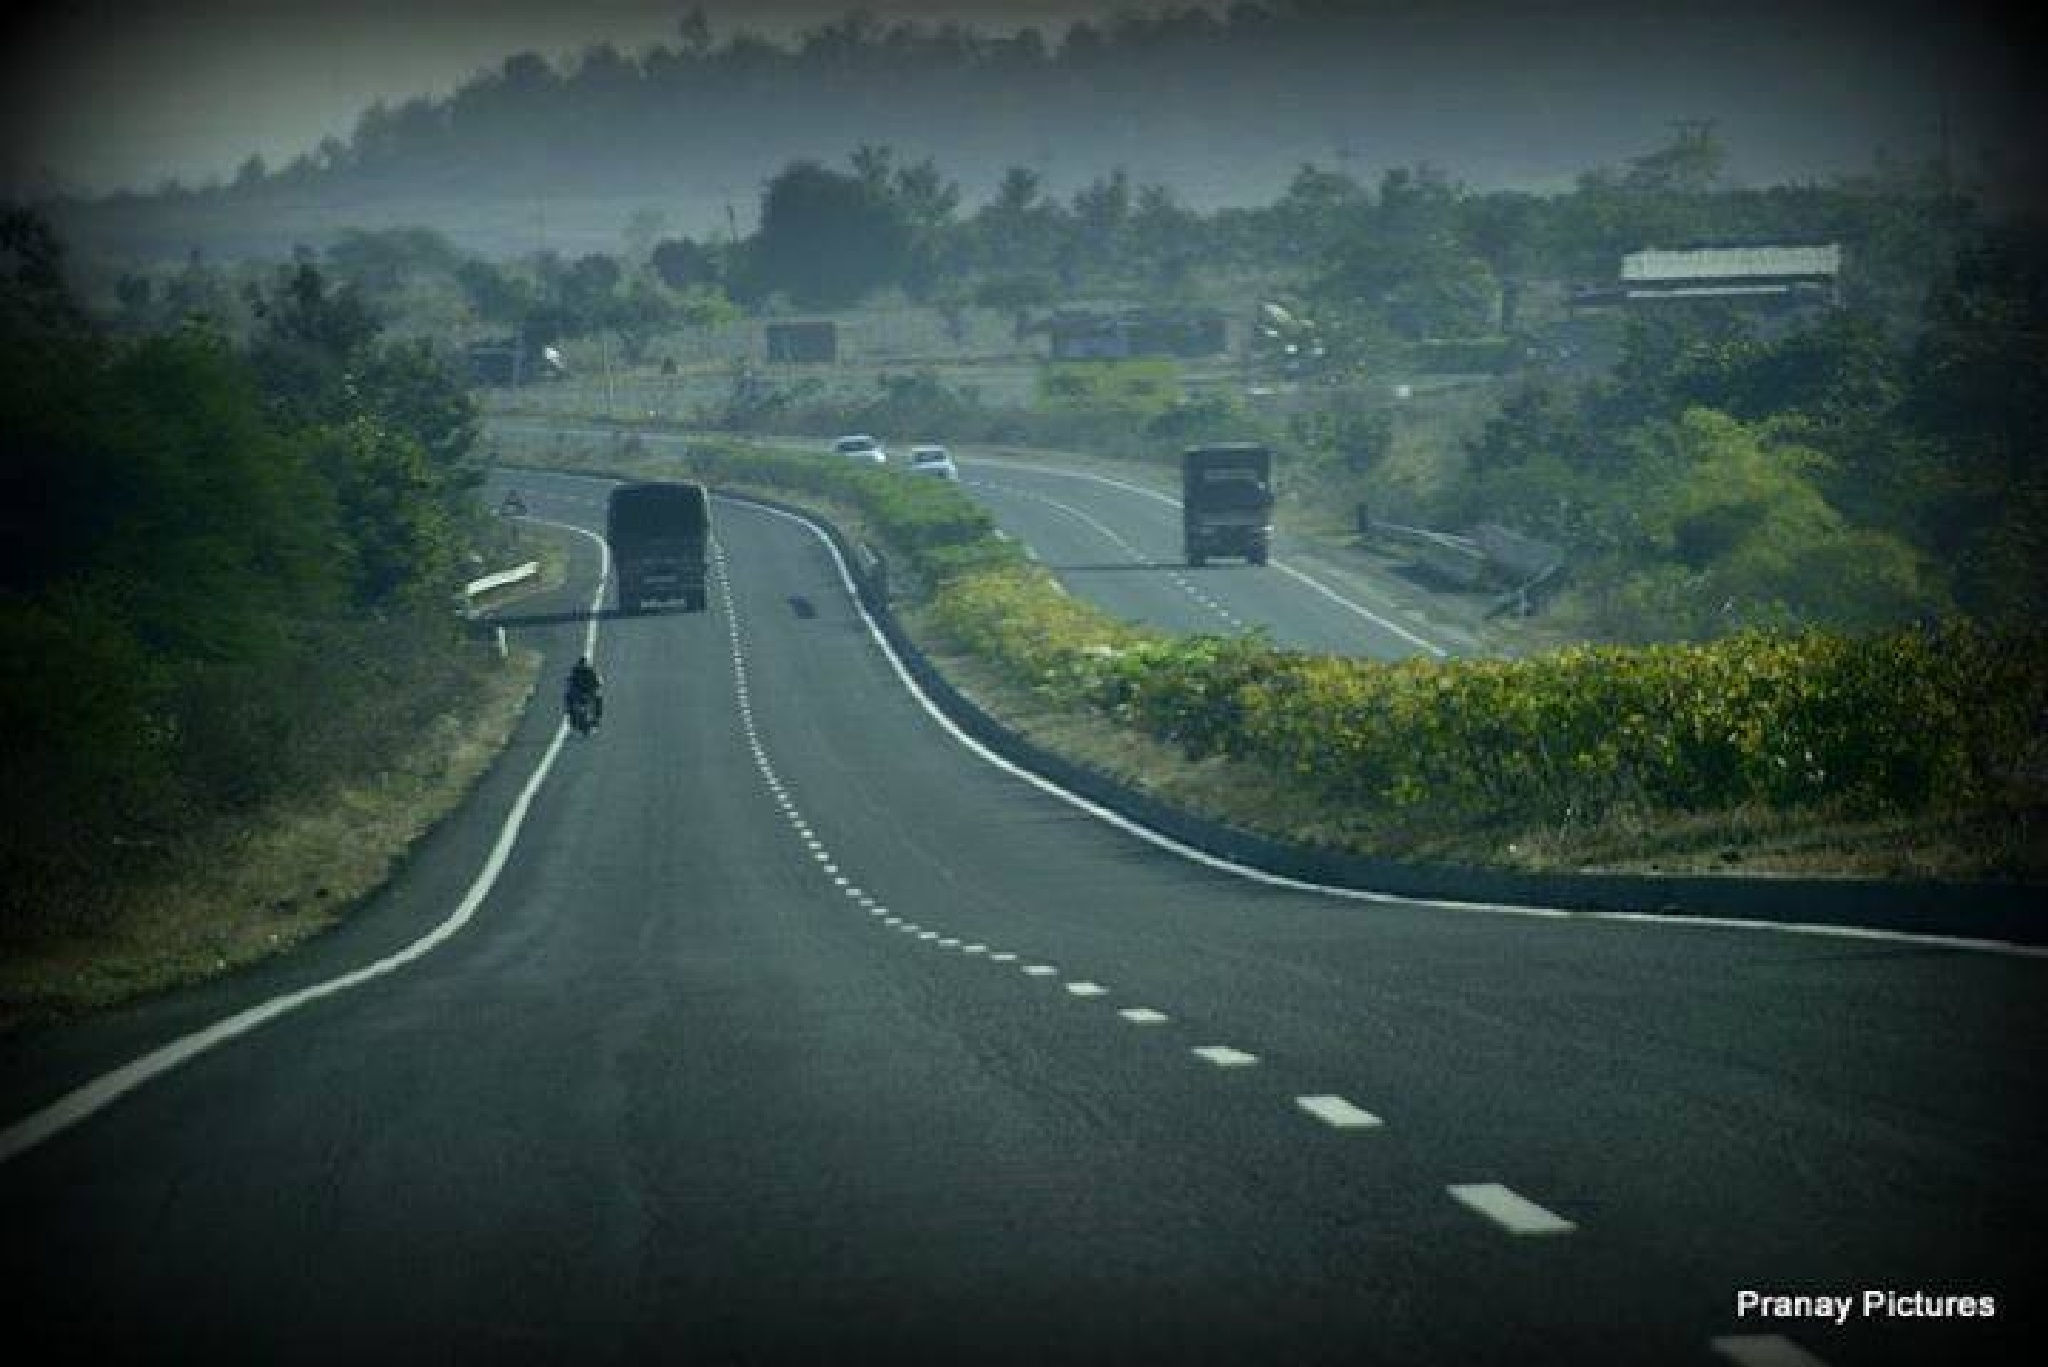 Highway by Pranay Pictures